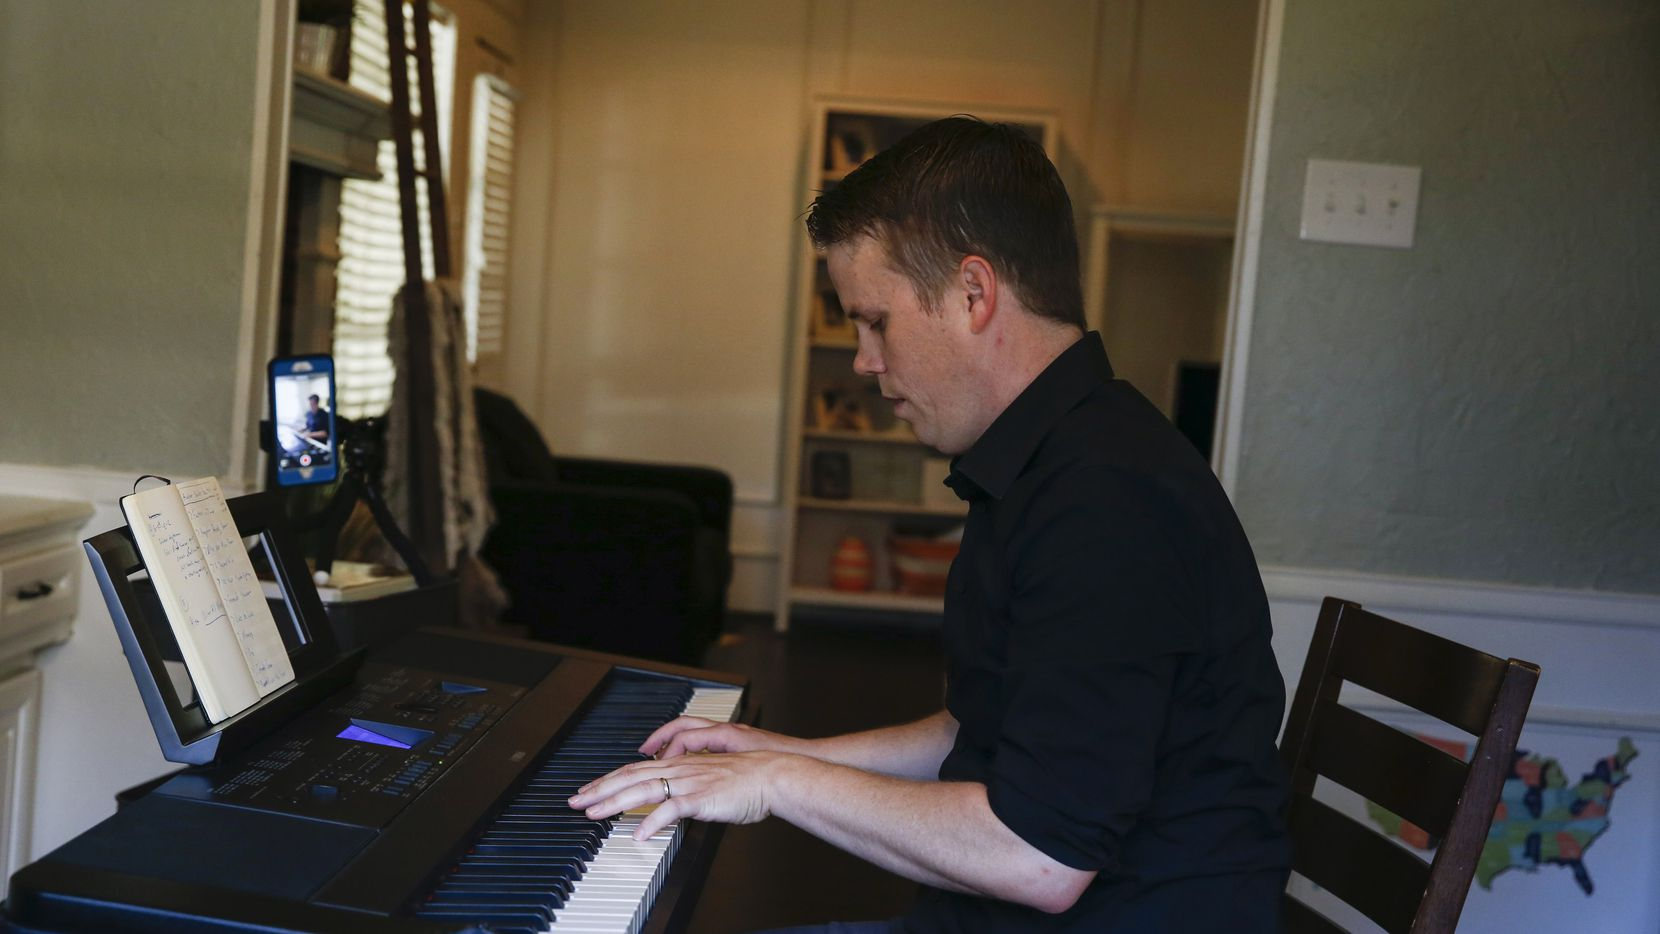 Brad Hanson, who has been playing the piano at NorthPark Mall for 11 years, plays the piano Friday, April 10, 2020, at his home in Garland, Texas. Since the mall is temporarily closed due to the new coronavirus, Hanson has been playing concerts live on Facebook to bring music into people's homes.